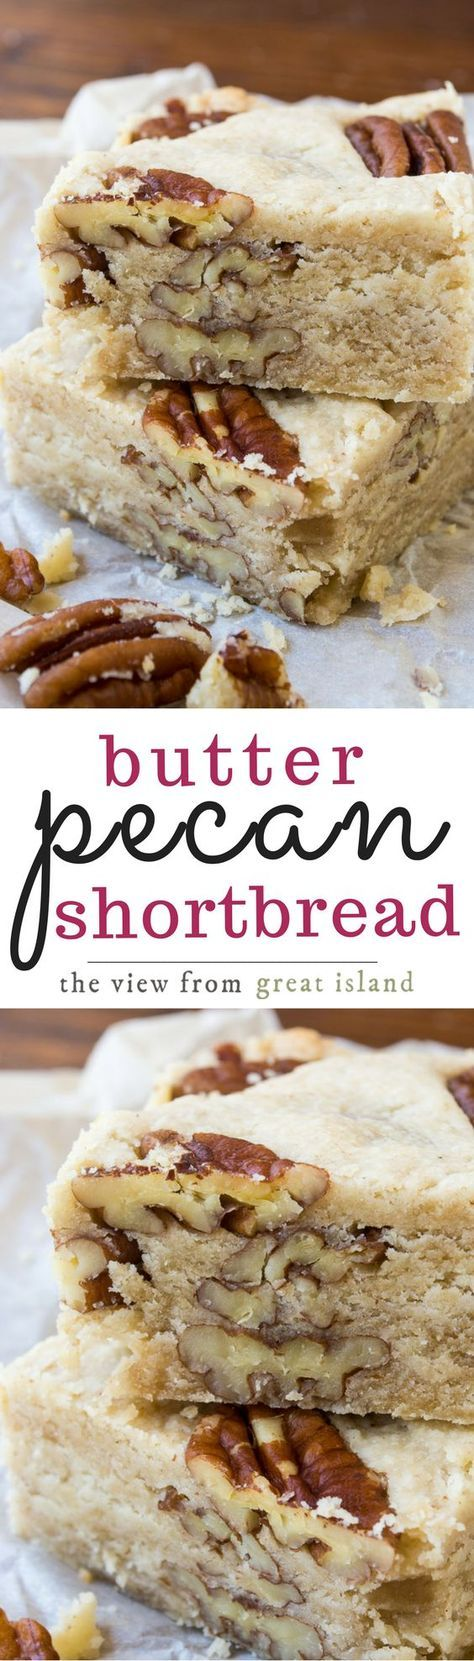 Butter Pecan Shortbread is a classic buttery shortbread loaded up with crunchy pecans ~ yum!   dessert   cookies   Holiday dessert  